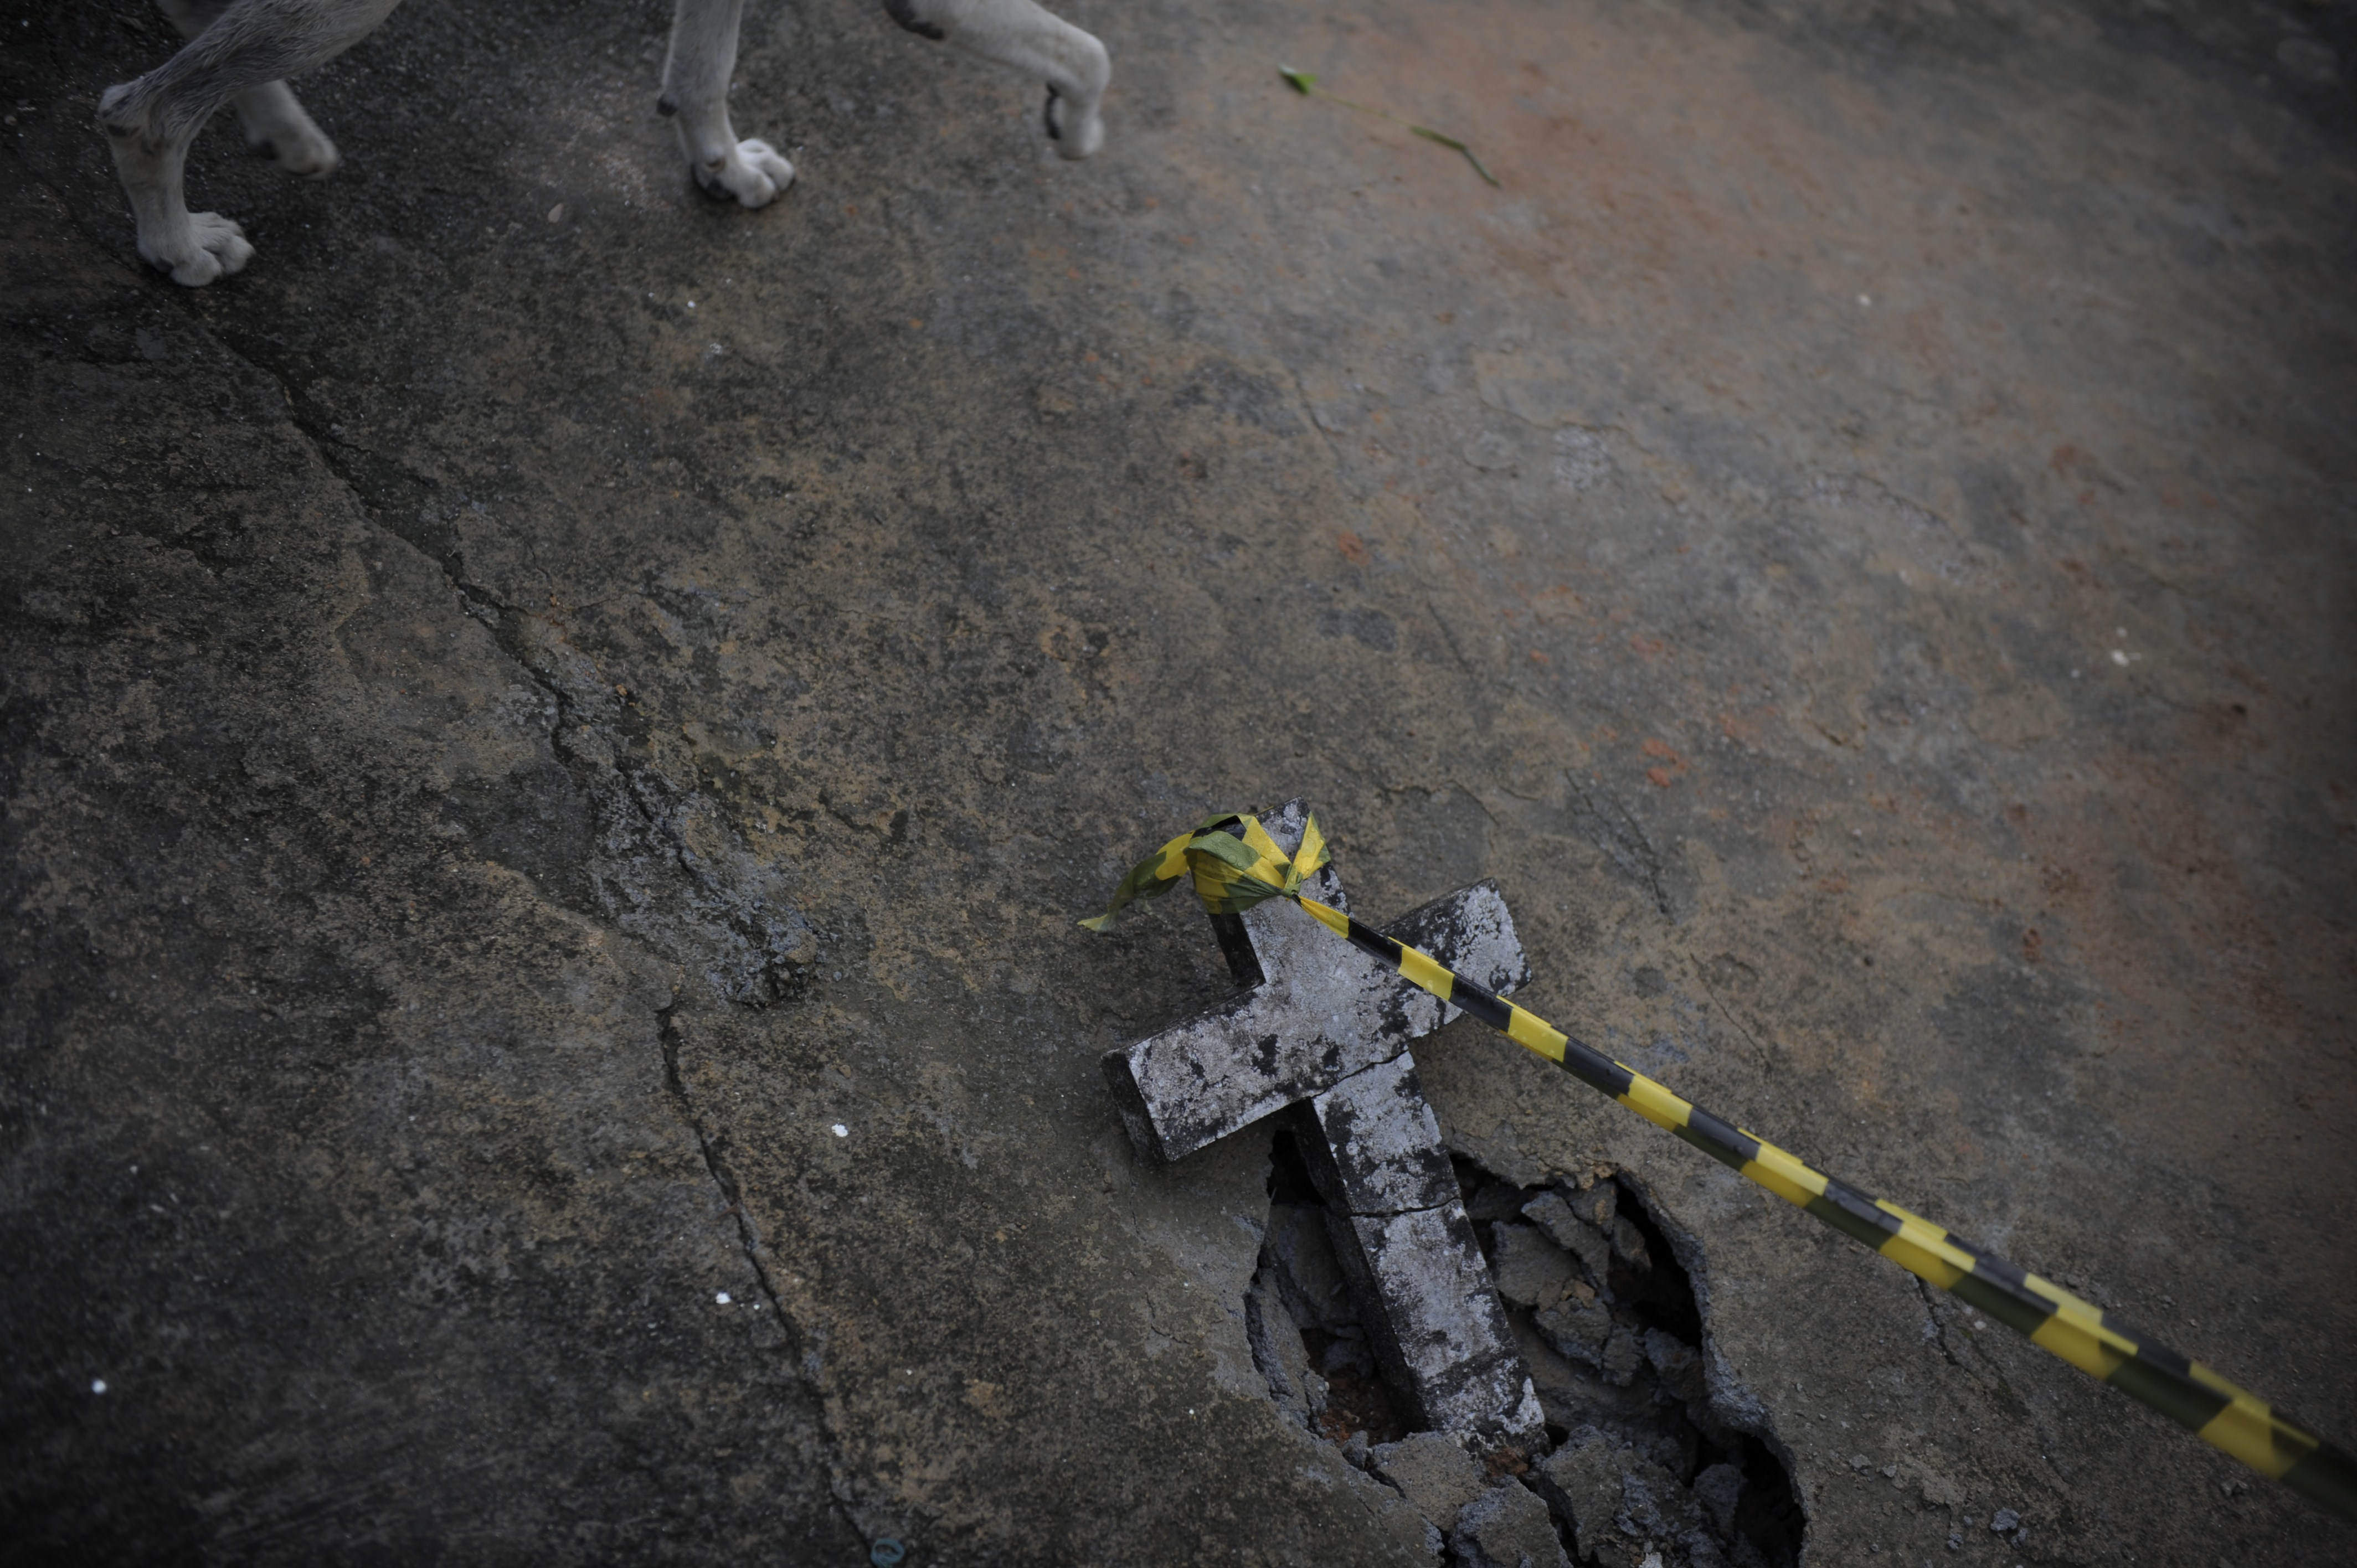 January 17, 2011. A dog walks by a cross on the ground at a cemetery in central Nova Friburgo, Rio de Janeiro, Brazil. The death toll from devastating floods and landslides reached 640.